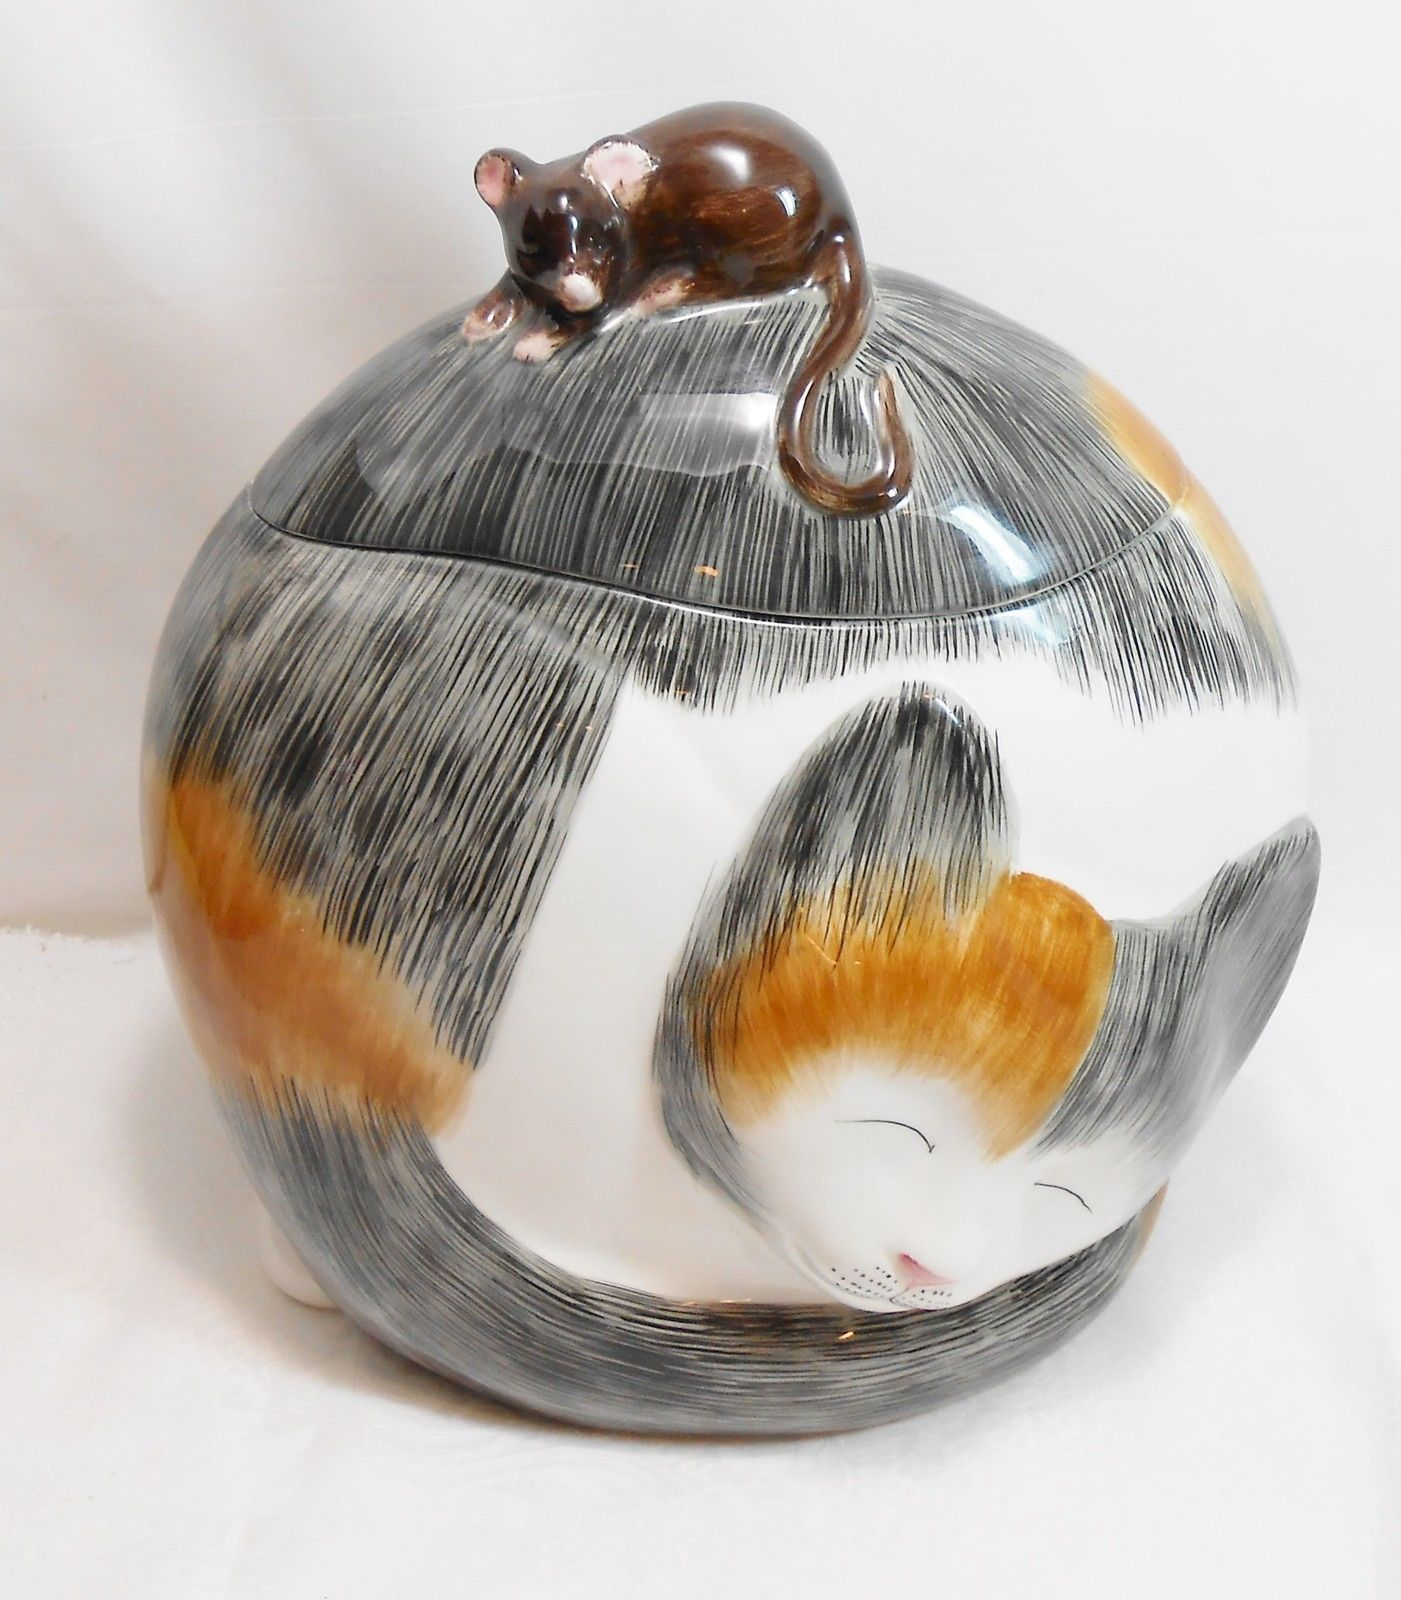 Ceramic Cookie Jar Sets Calico Cat Sleeping Cookie Jar With Mouse On Lid Ceramic